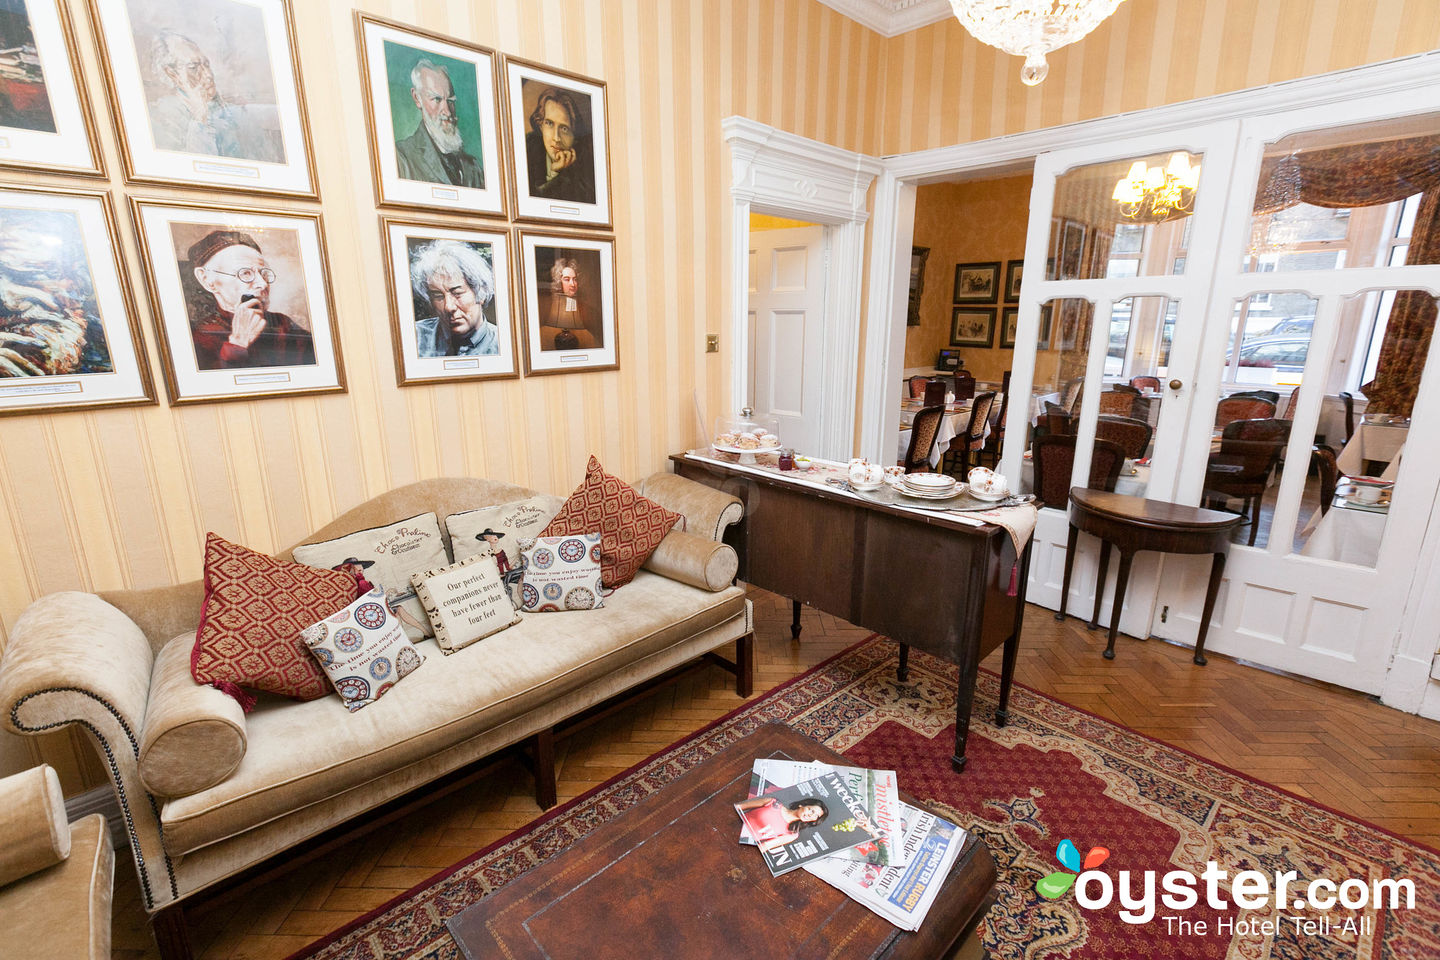 24 Stunden Wohnzimmer Distillery Kilronan House Review Updated Rates Sep 2019 Oyster